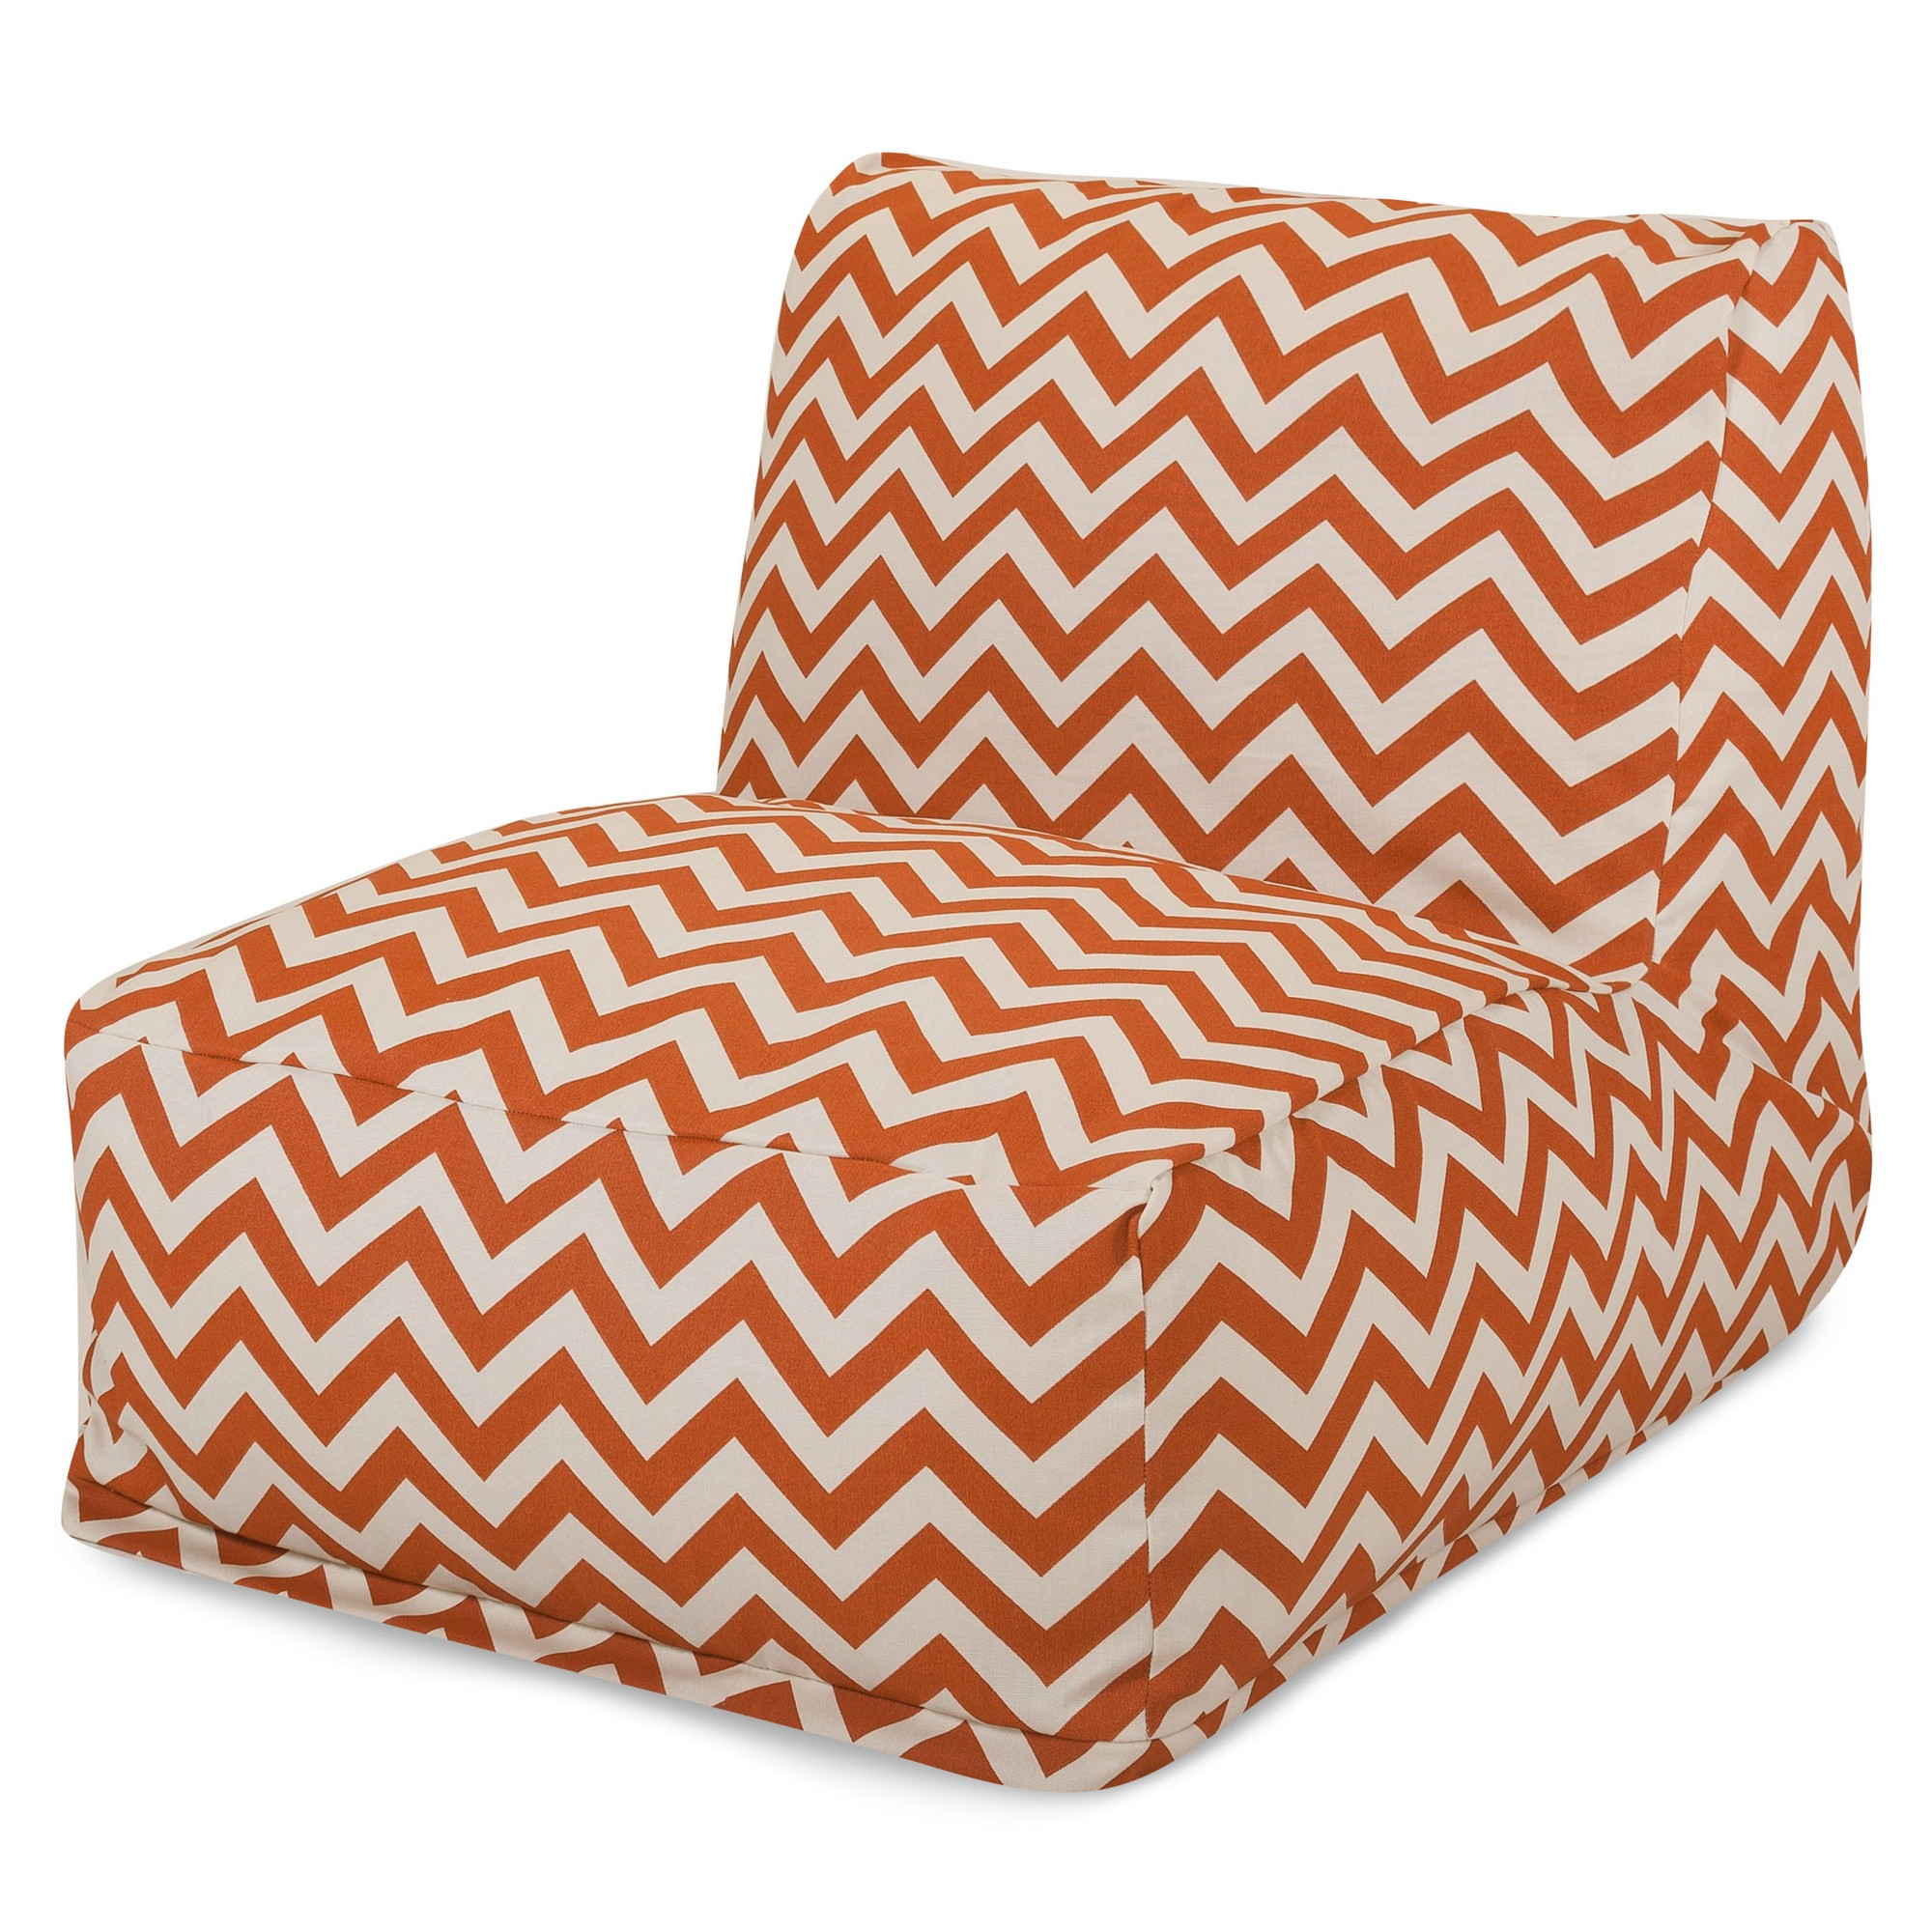 Majestic Home Goods Indoor Outdoor Black Chevron Chair Lounger Bean Bag 36 in L x 27 in W x 24 in H